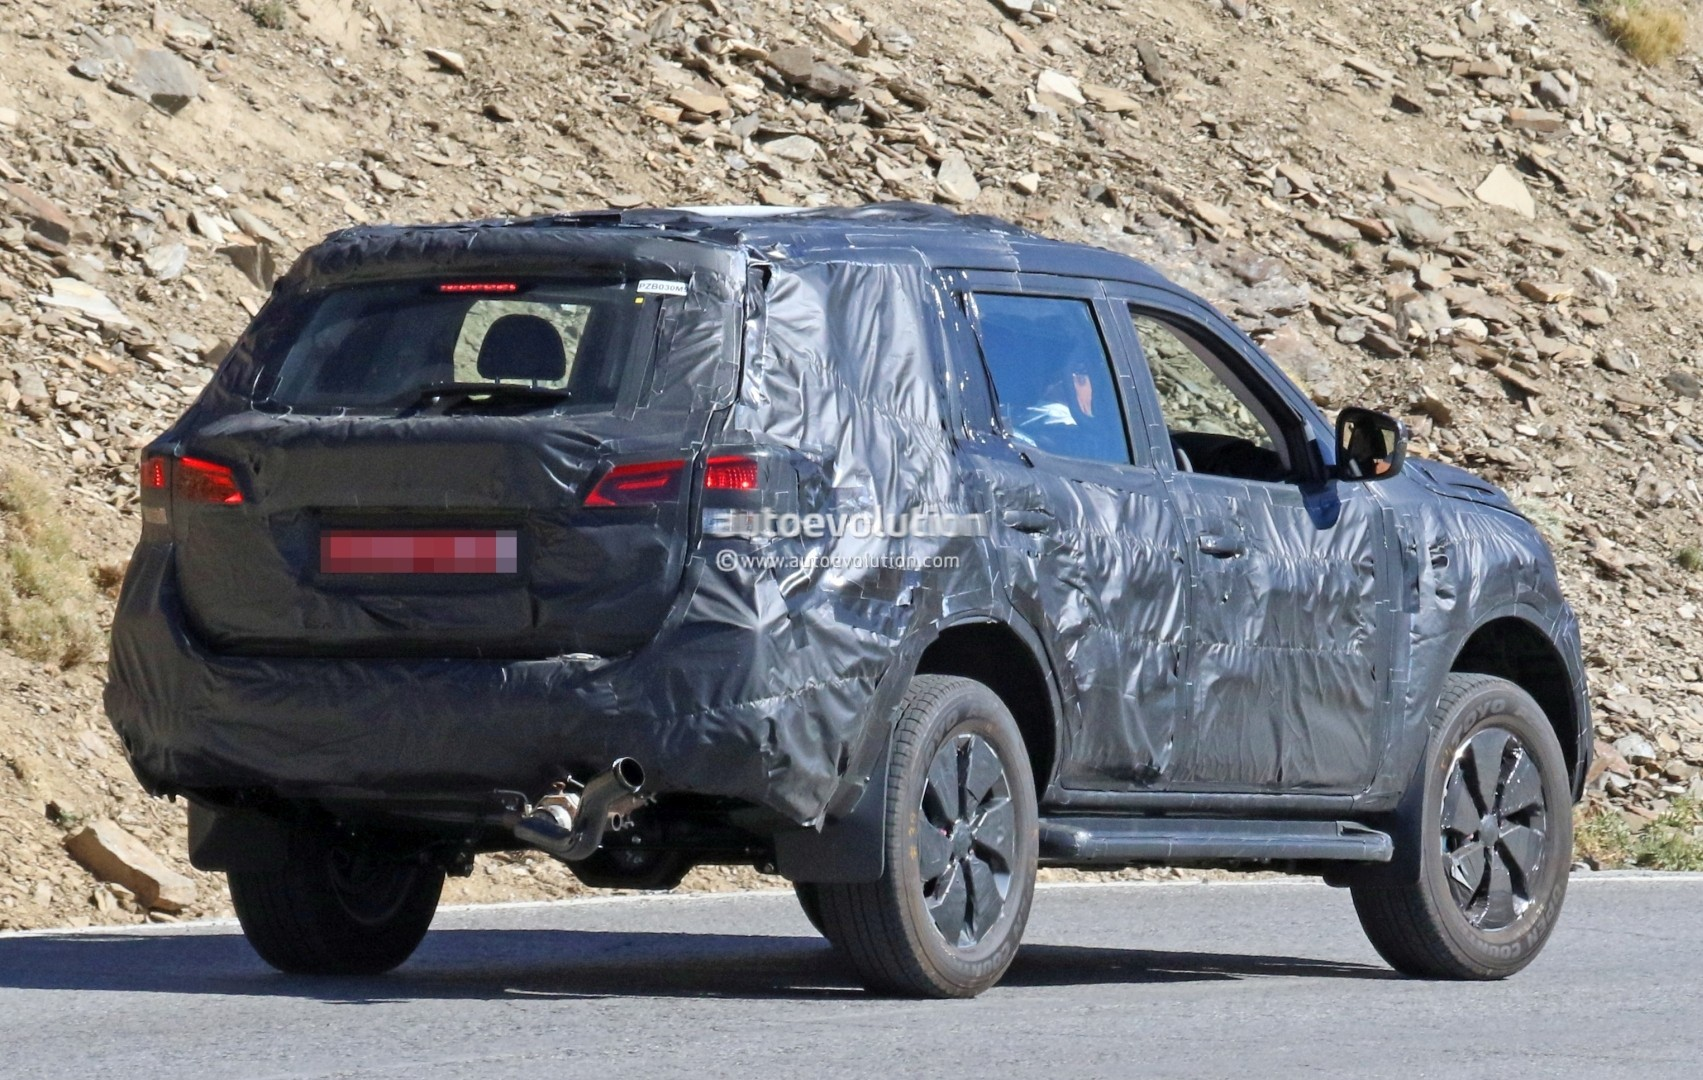 nissan navara suv spotted testing with production body. Black Bedroom Furniture Sets. Home Design Ideas